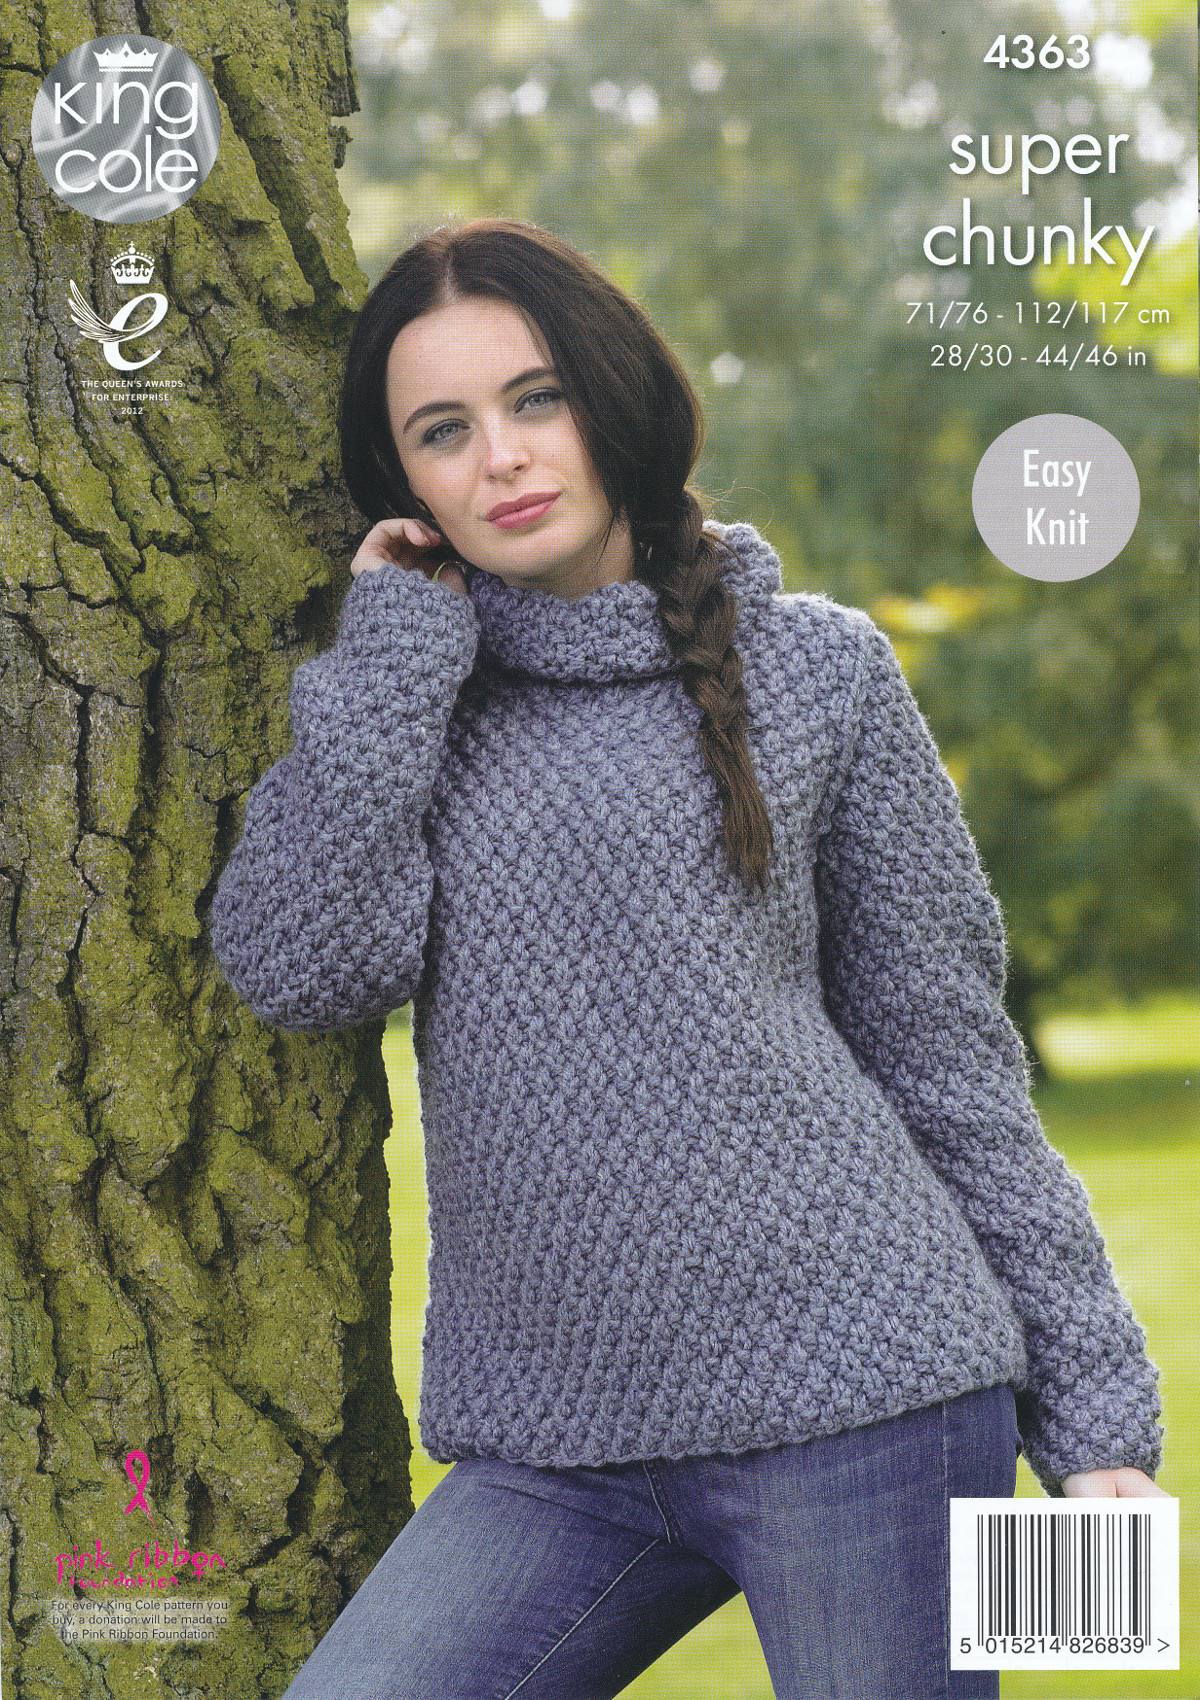 Ladies Super Chunky Knitting Pattern King Cole Easy Knit Sweater & Jacket...